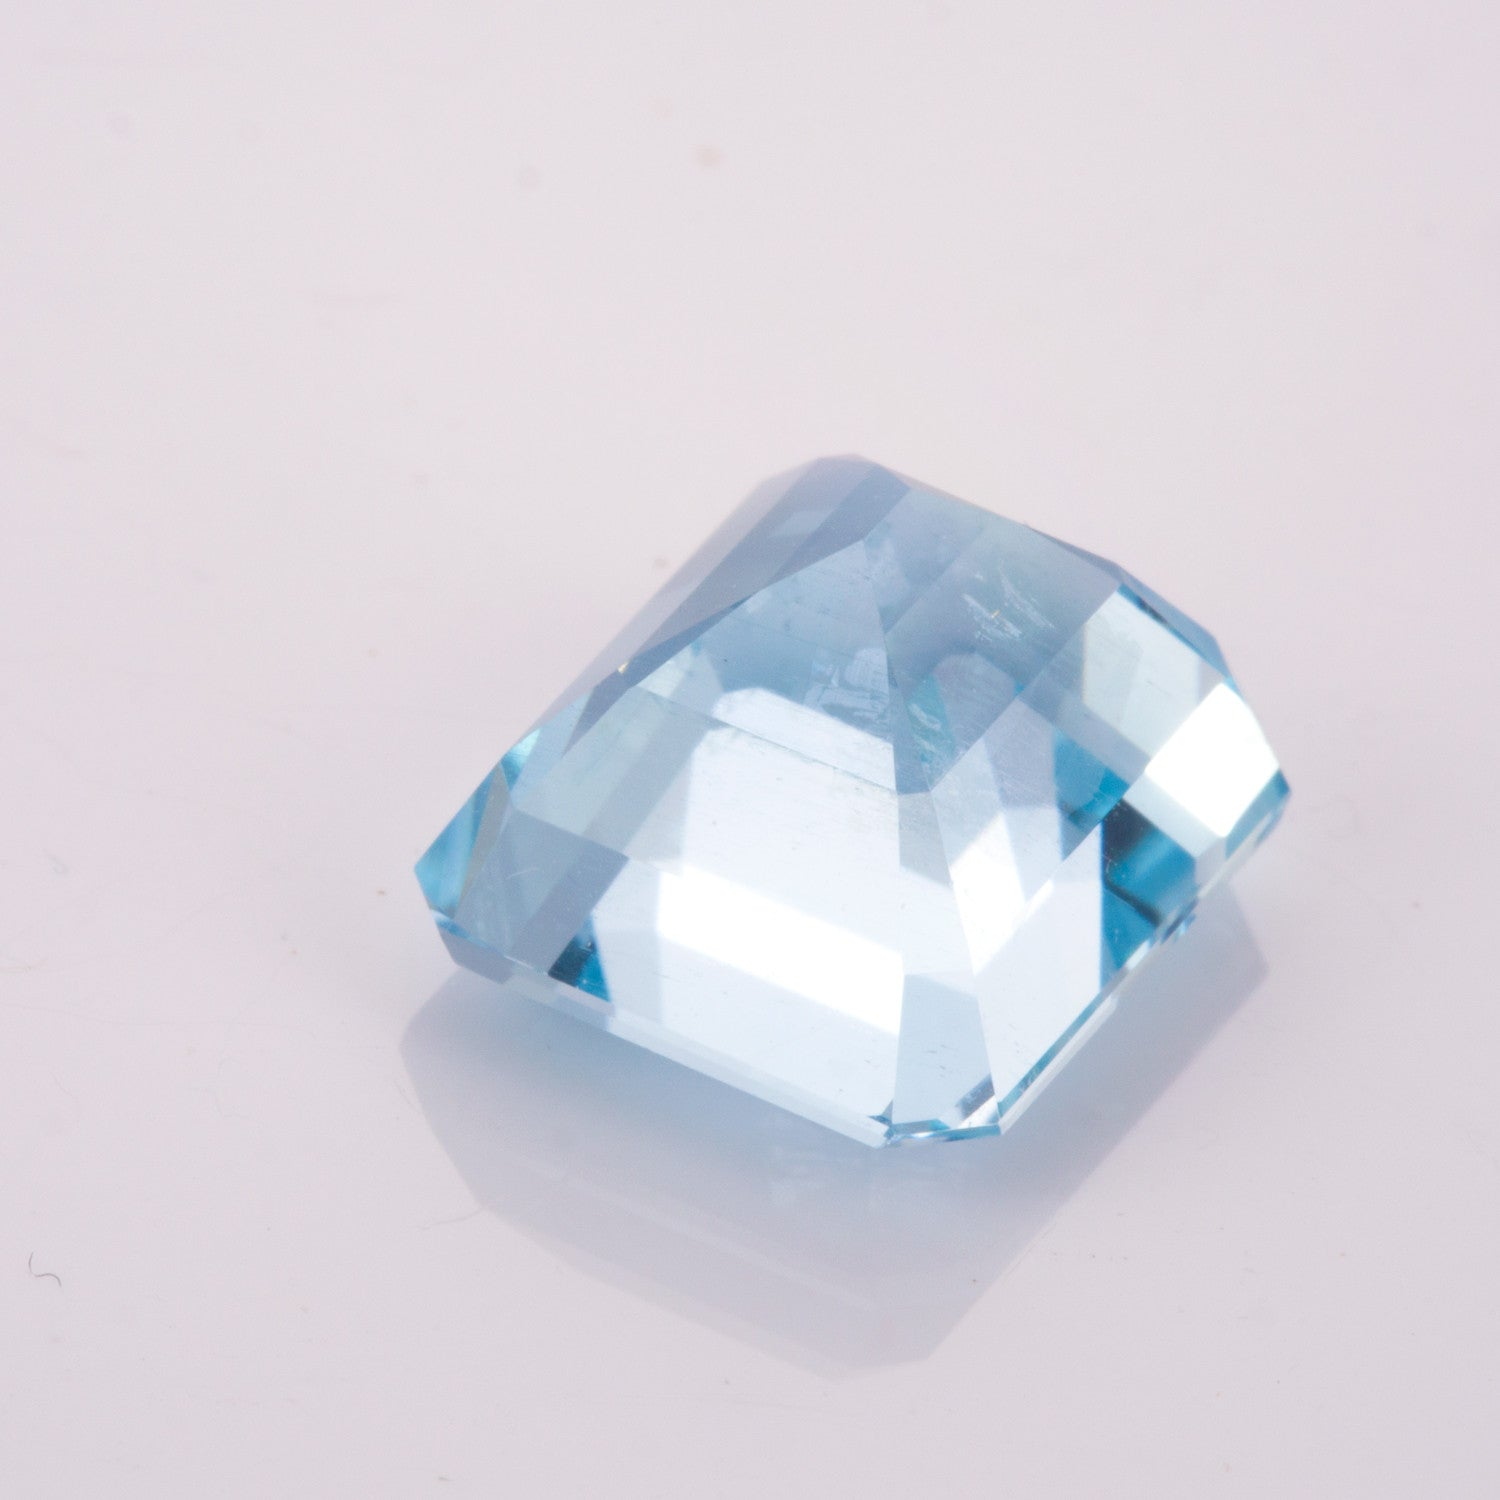 4.61ct Emerald Cut Aquamarine